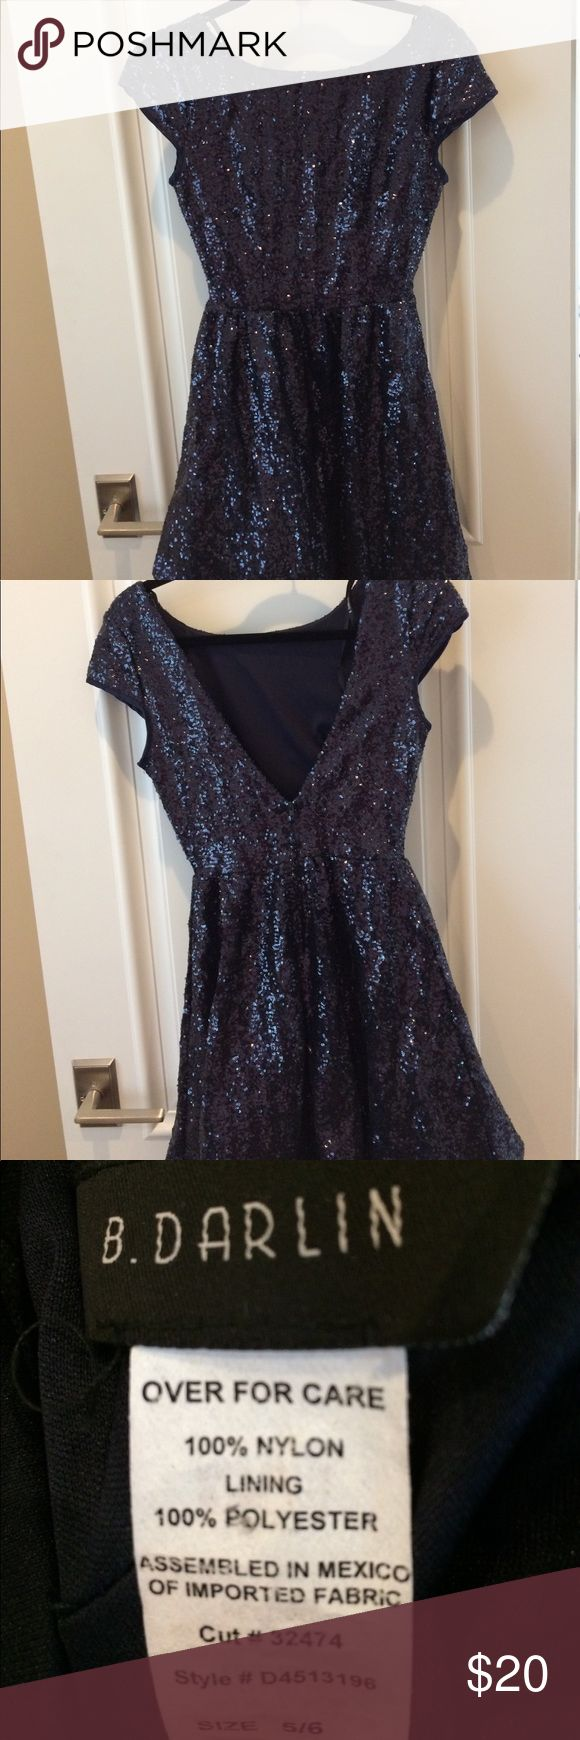 Navy Sequin Dress This dress is perfect for any special occasion! The sequins give it extra glam! Only worn once for homecoming! B. Darlin Dresses Prom